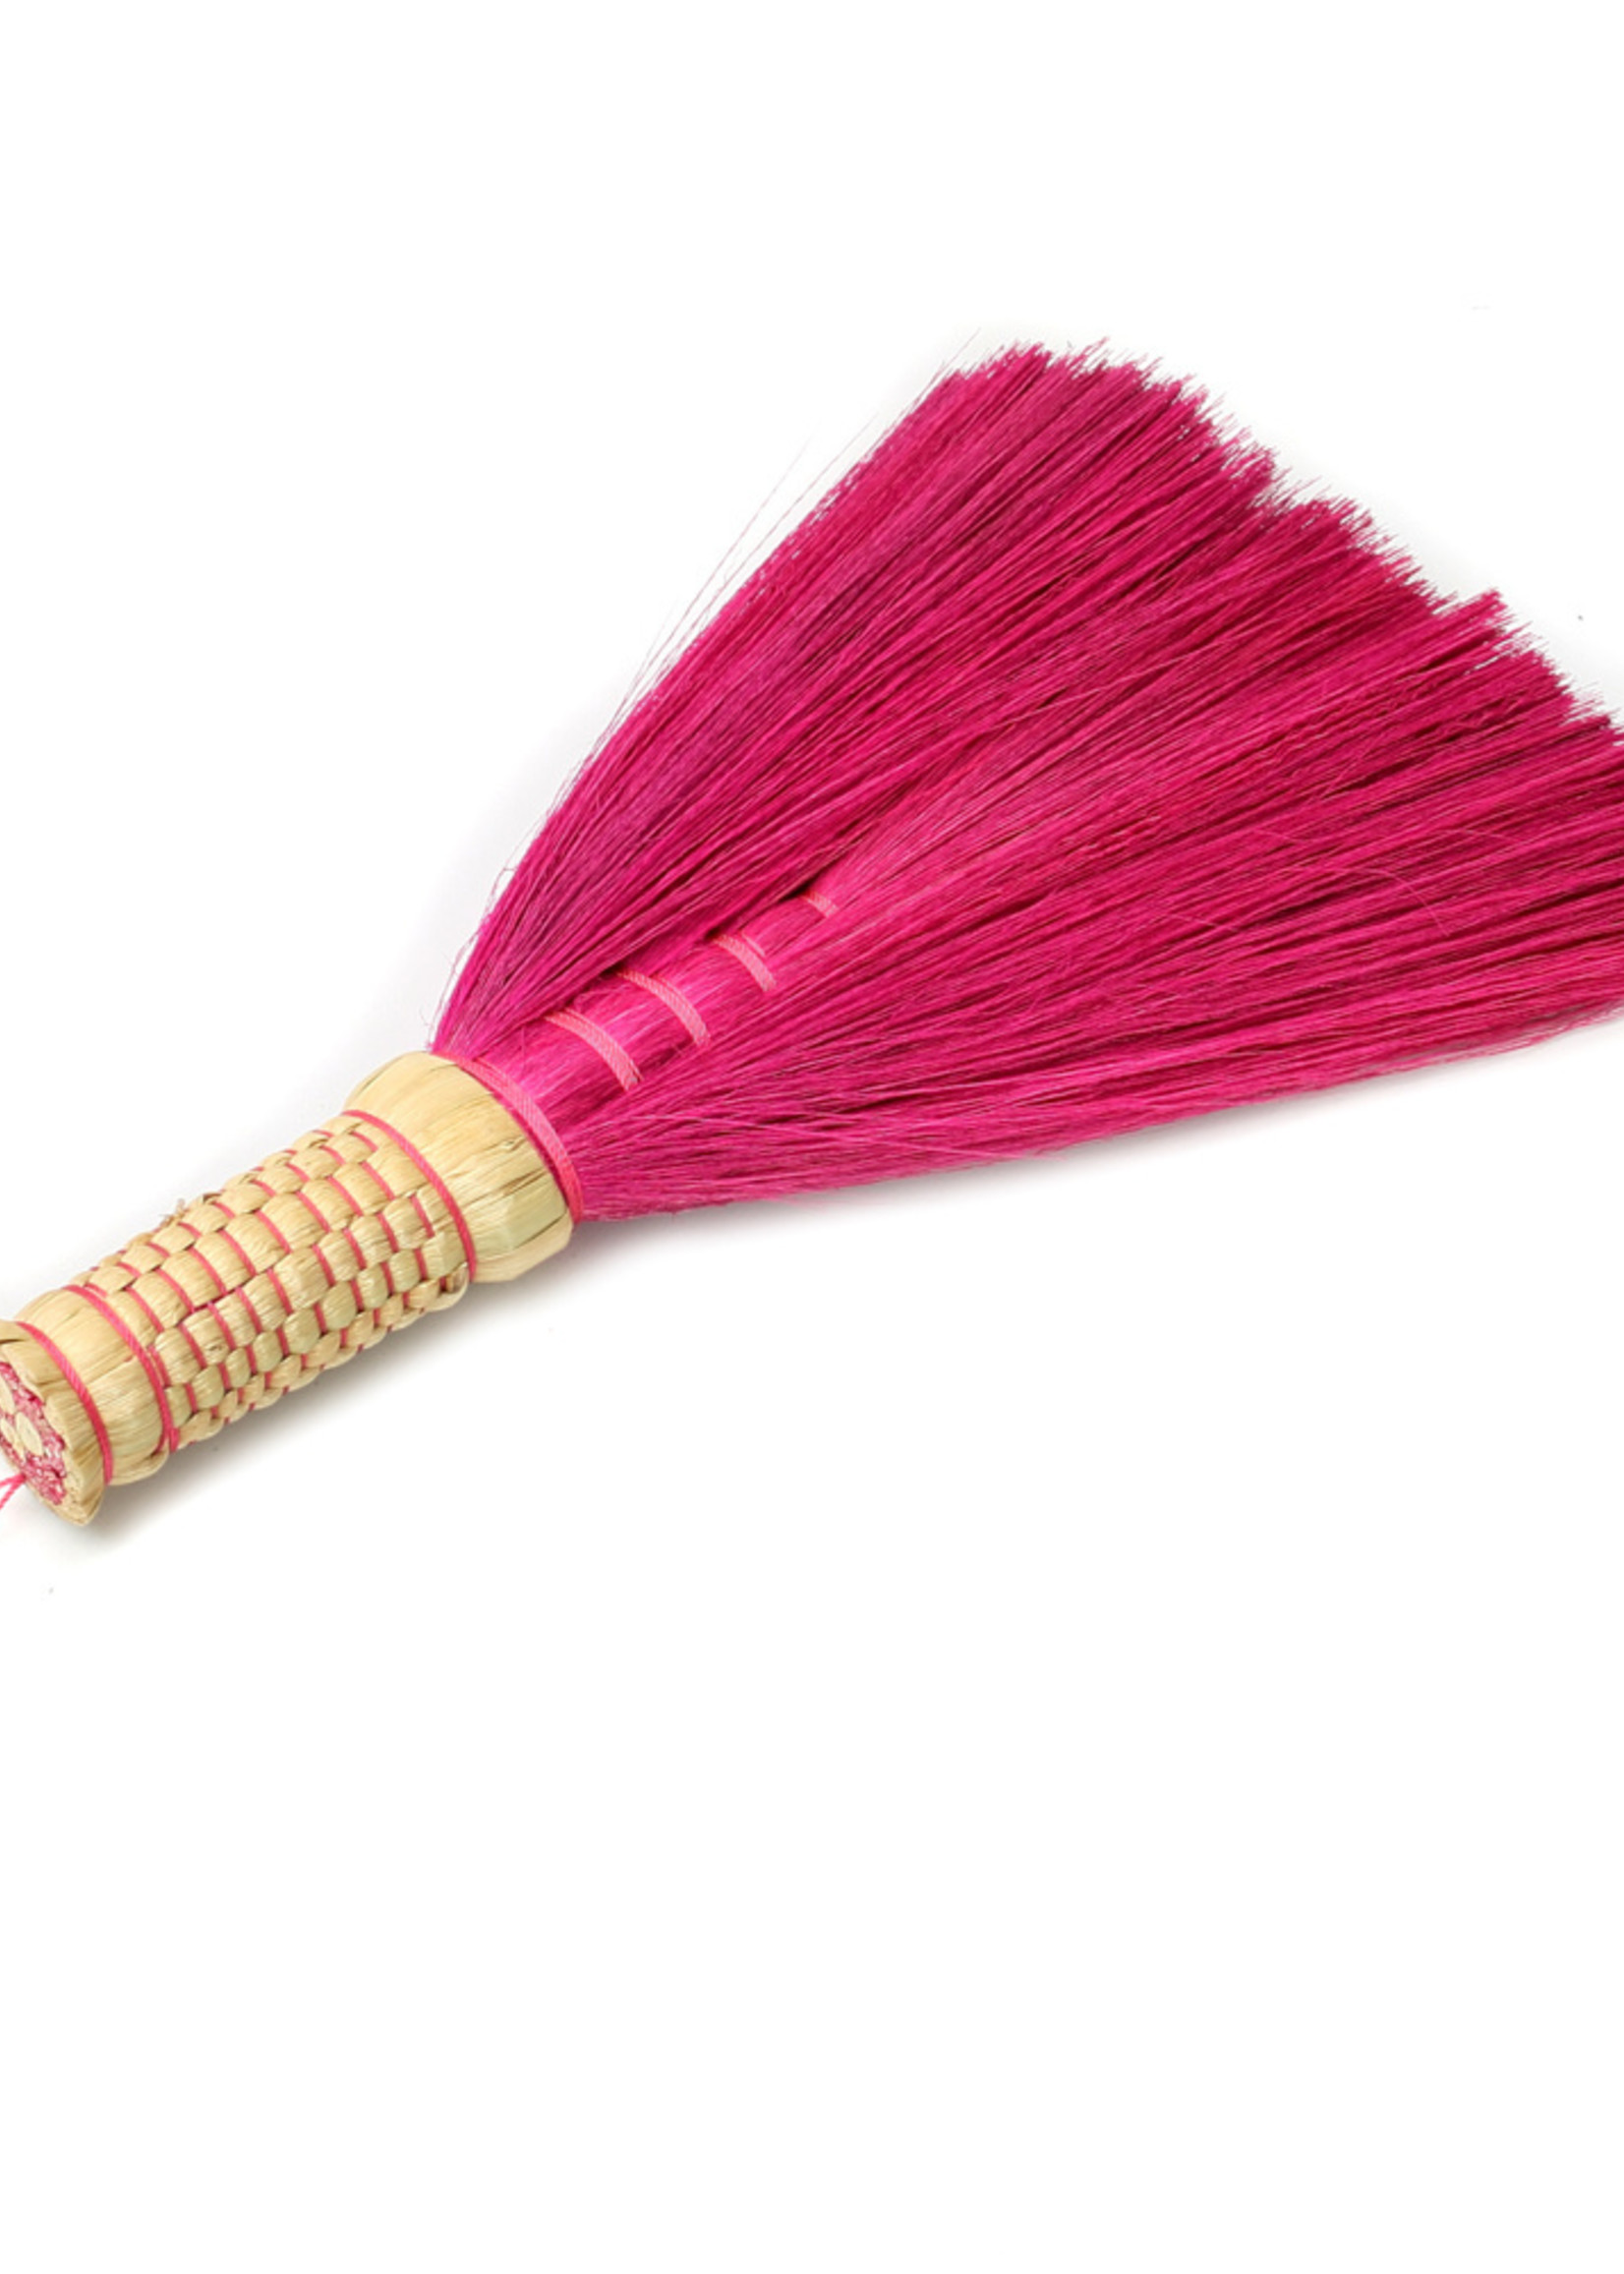 The Sweeping Brush - Pink